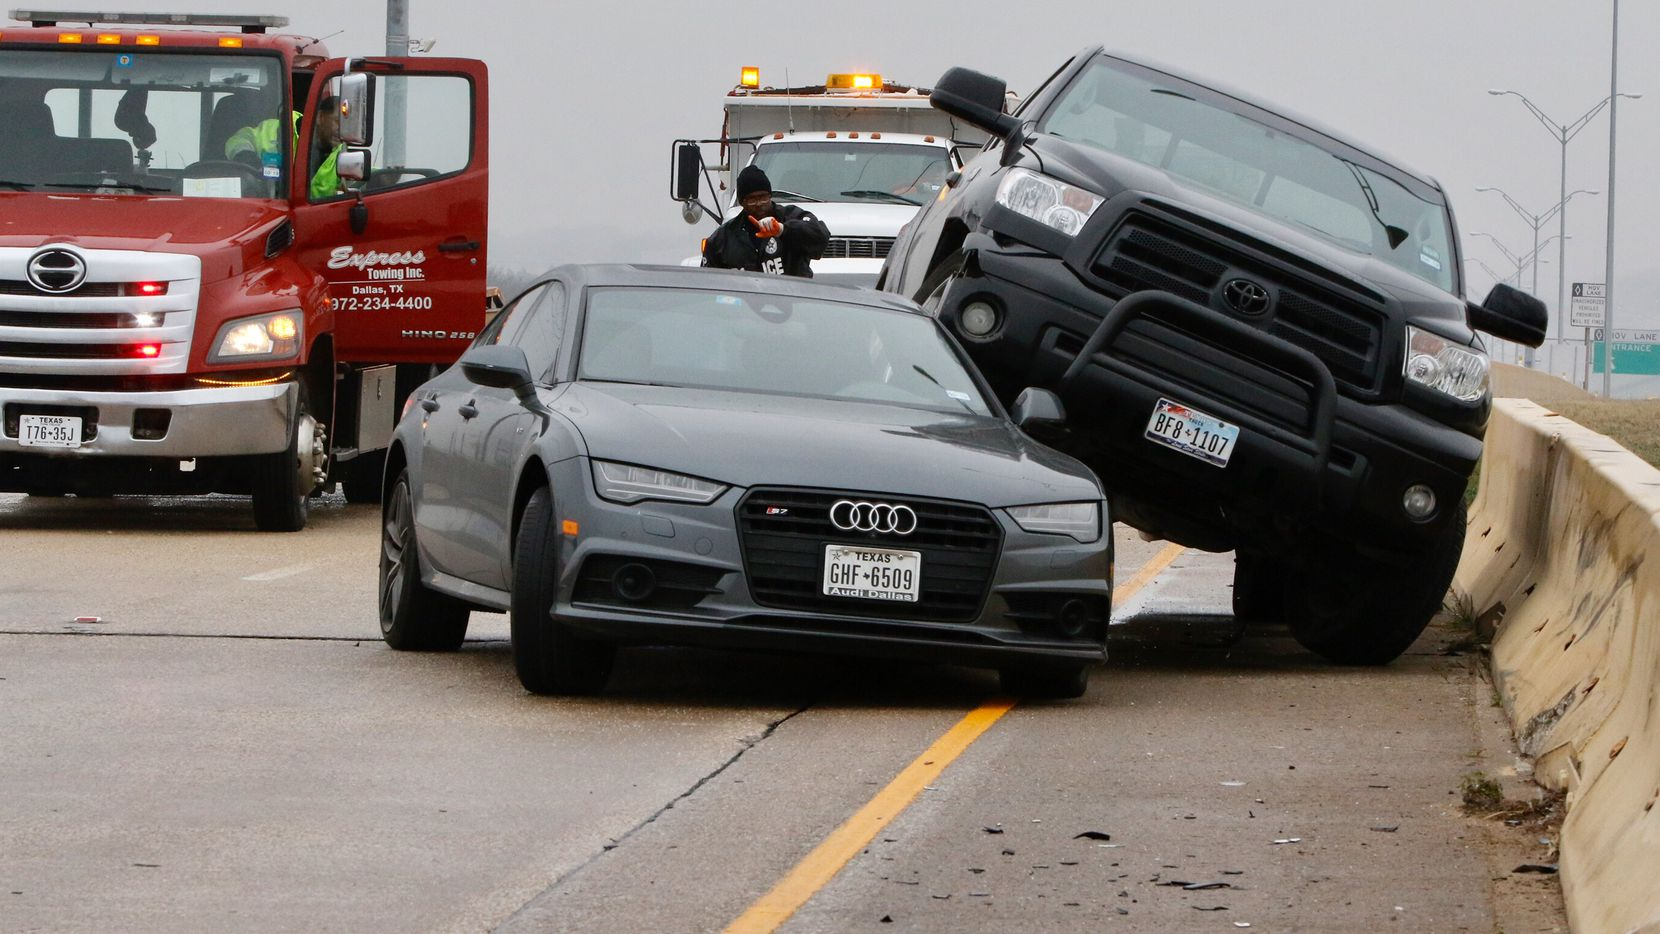 Richard Garay (left) of Express Towing talks to Dallas police Officer J.W. Jacobs after he arrived at the scene of a wreck on the southbound lanes U.S. Highway 67 over Camp Wisdom Road in Dallas on Thursday. Freezing temperature and wet conditions overnight led to icy roads, causing dozens of accidents.